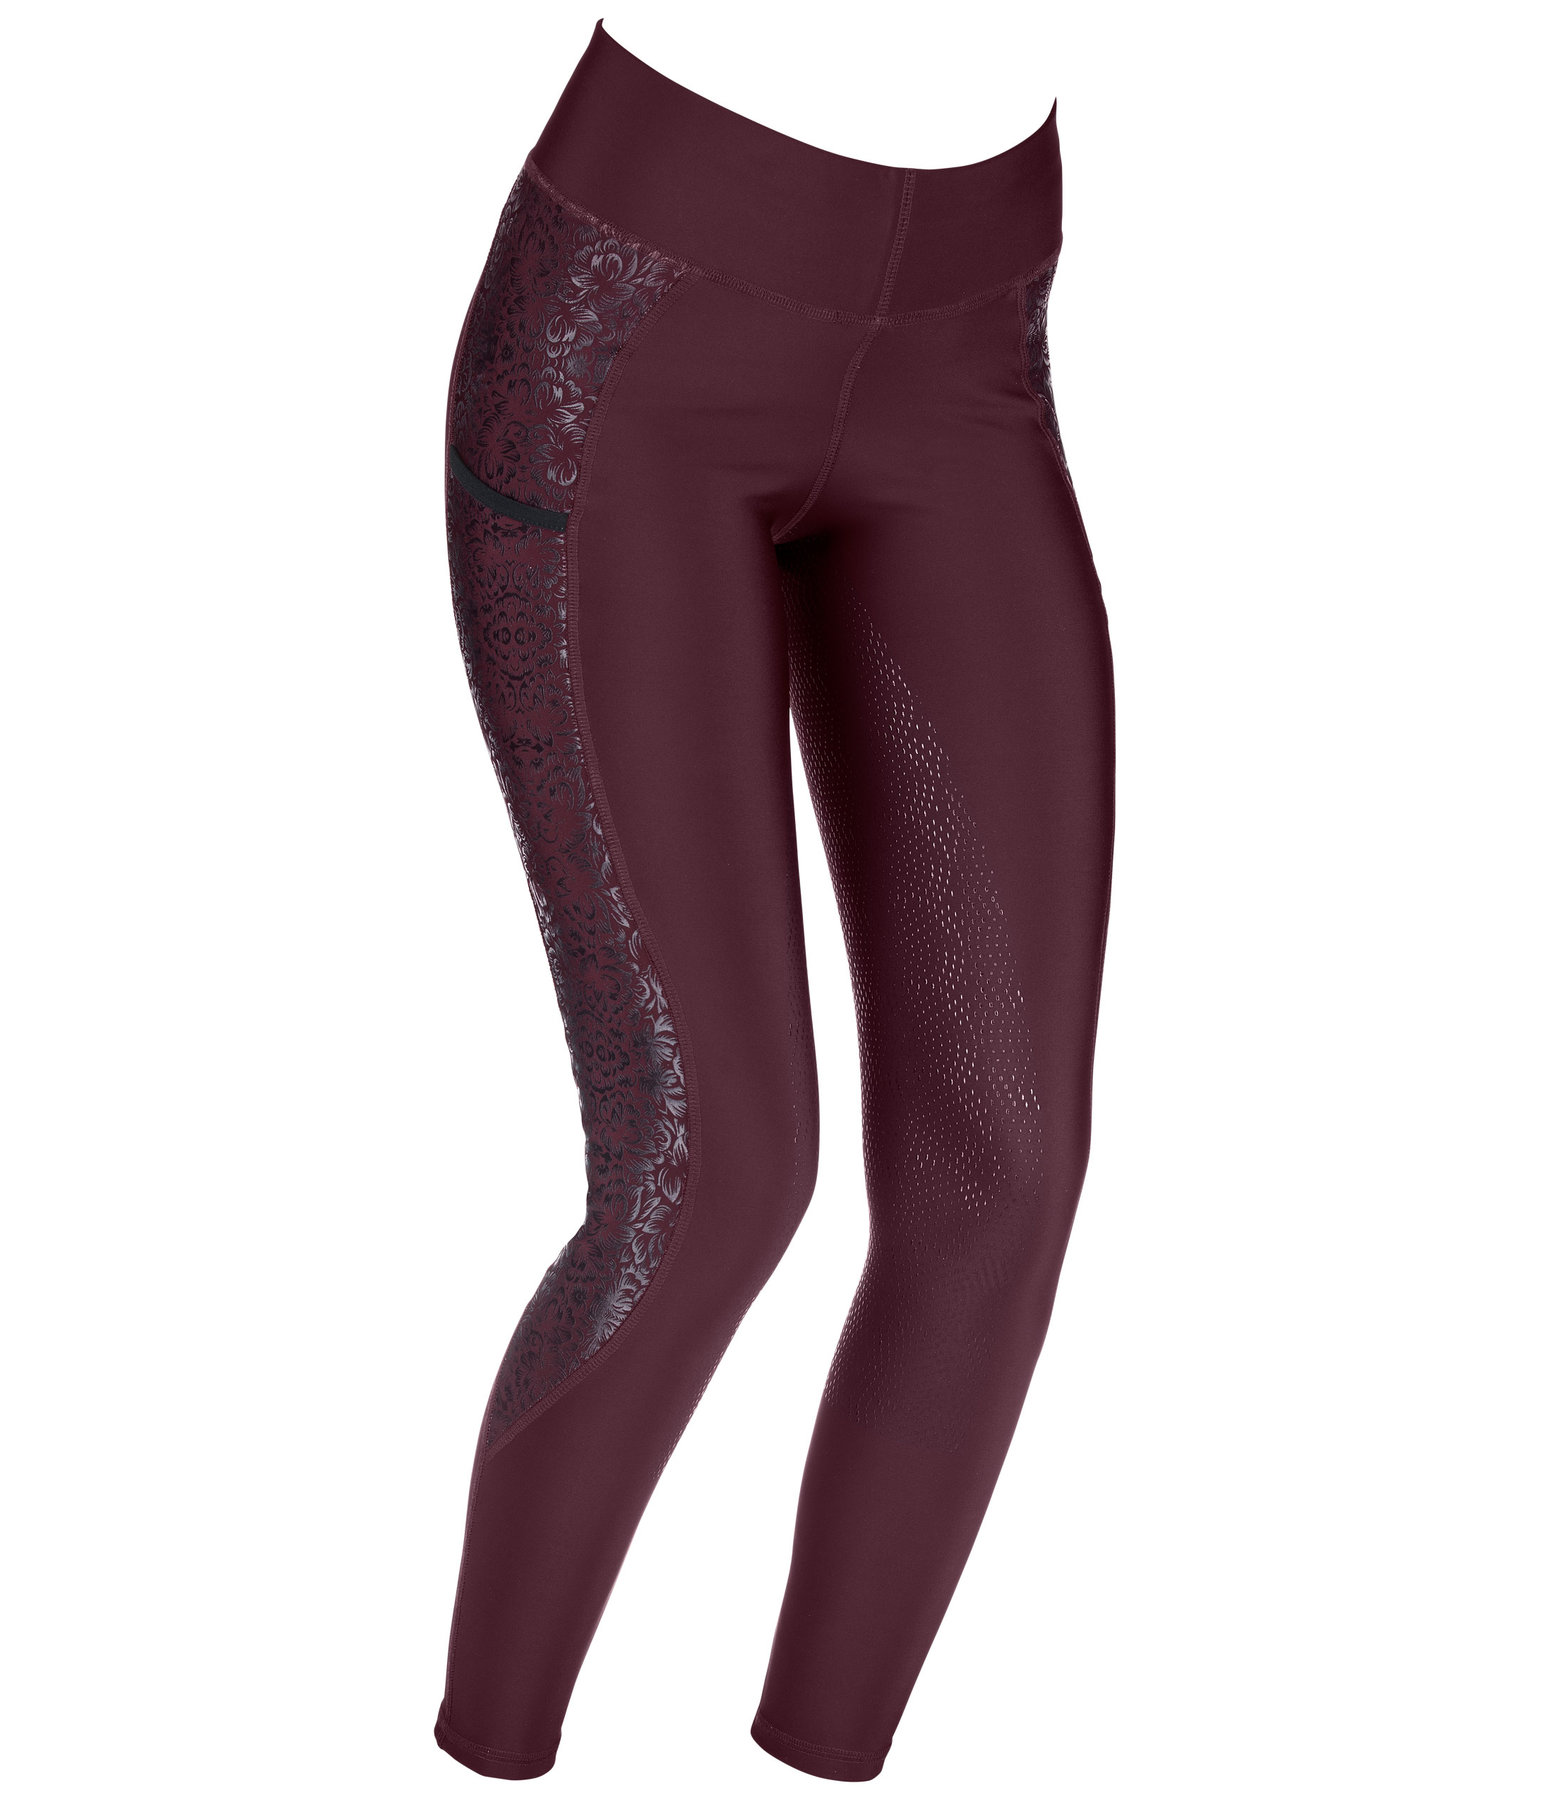 Grip-Vollbesatz-Reitleggings Carolin